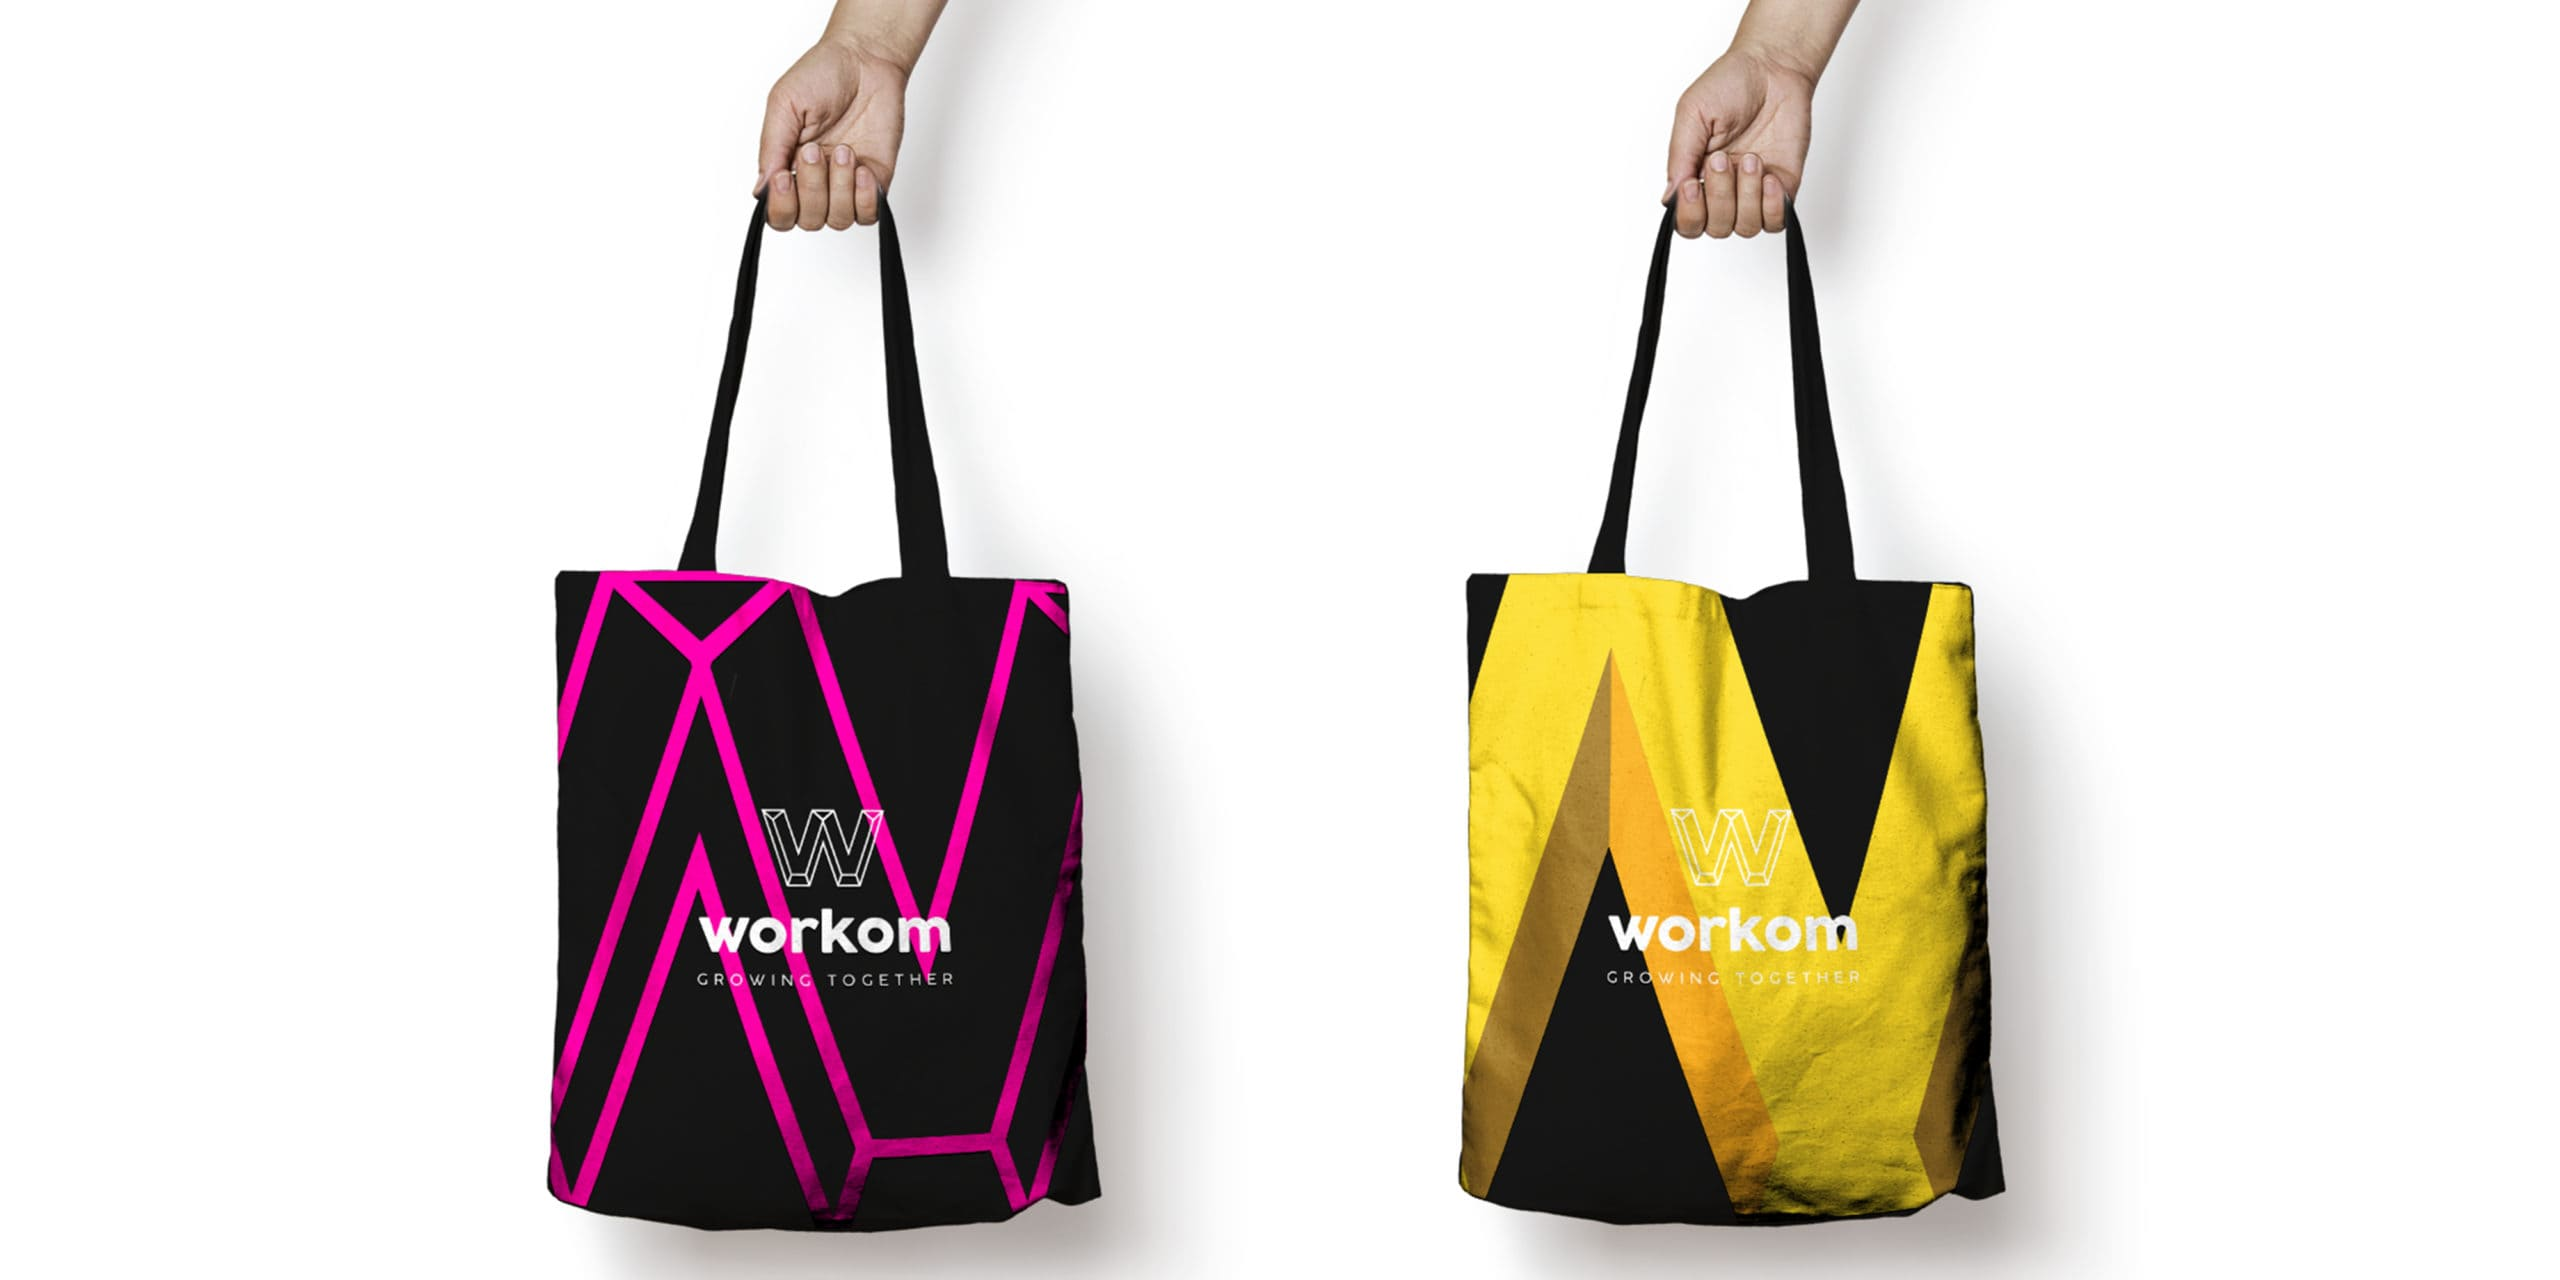 workom_tote_bags